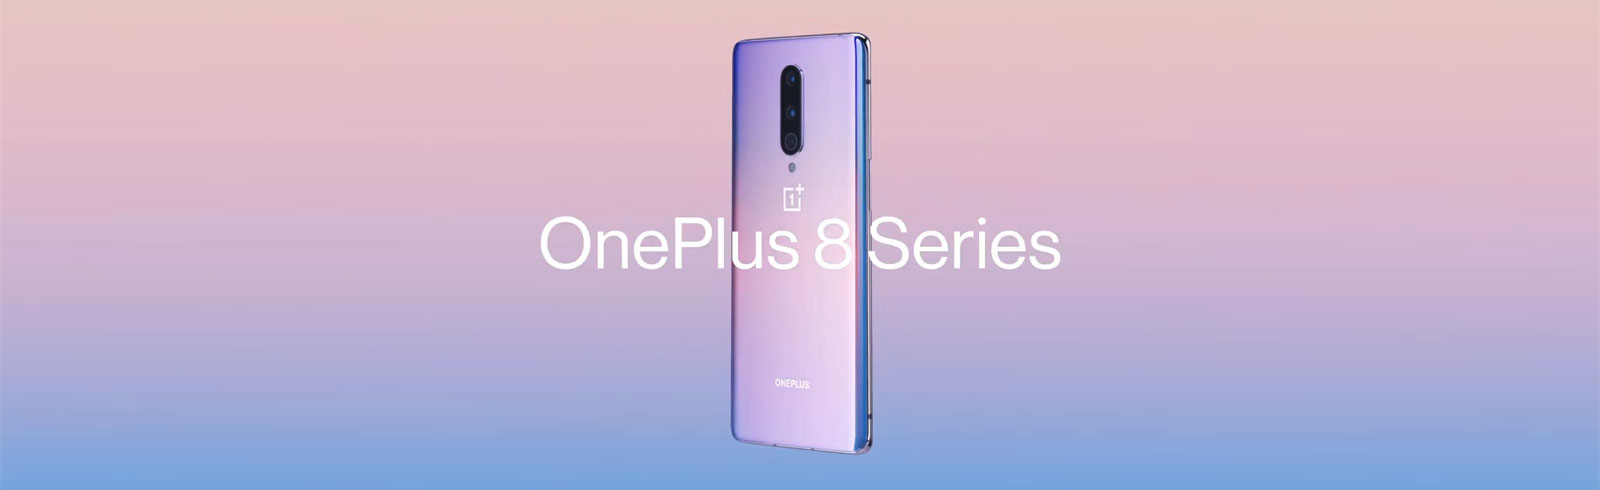 OnePlus 8 and OnePlus 8 Pro prices